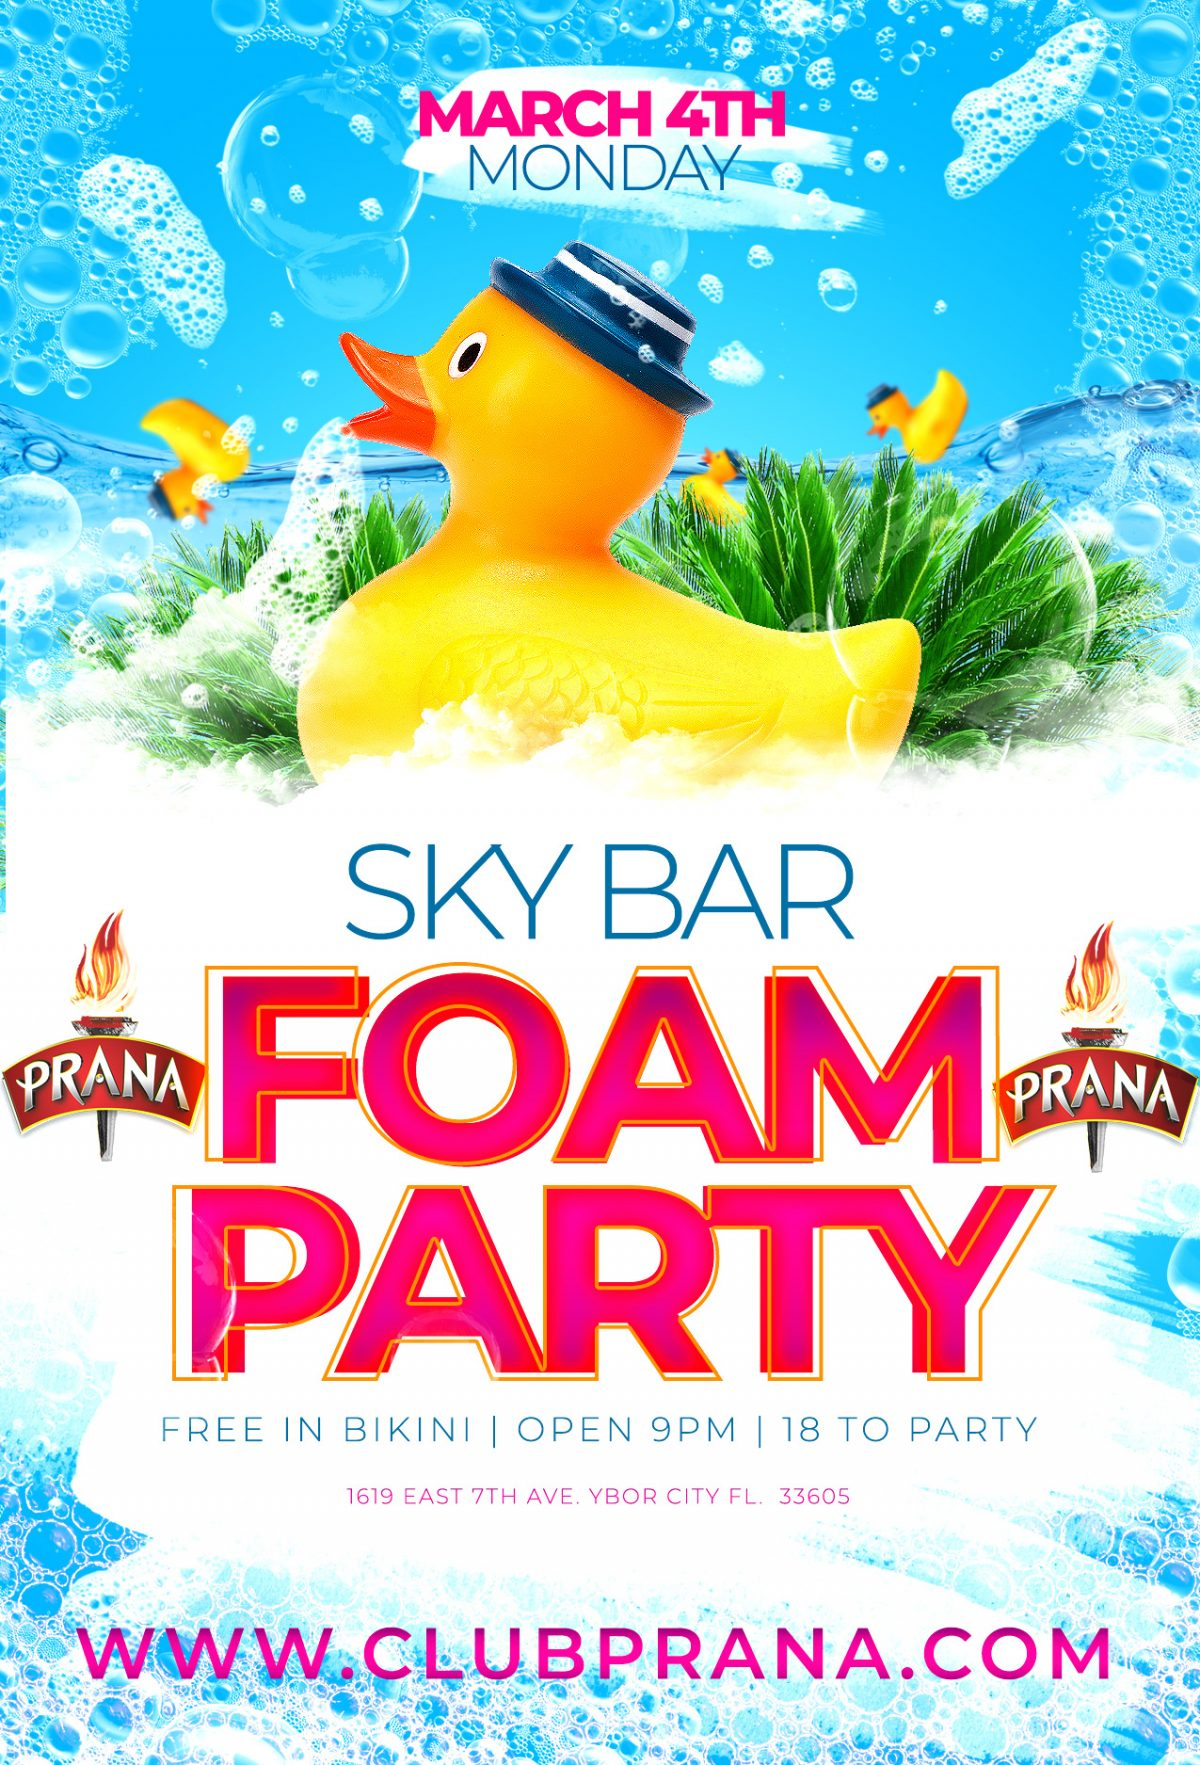 Sky Bar Foam Party